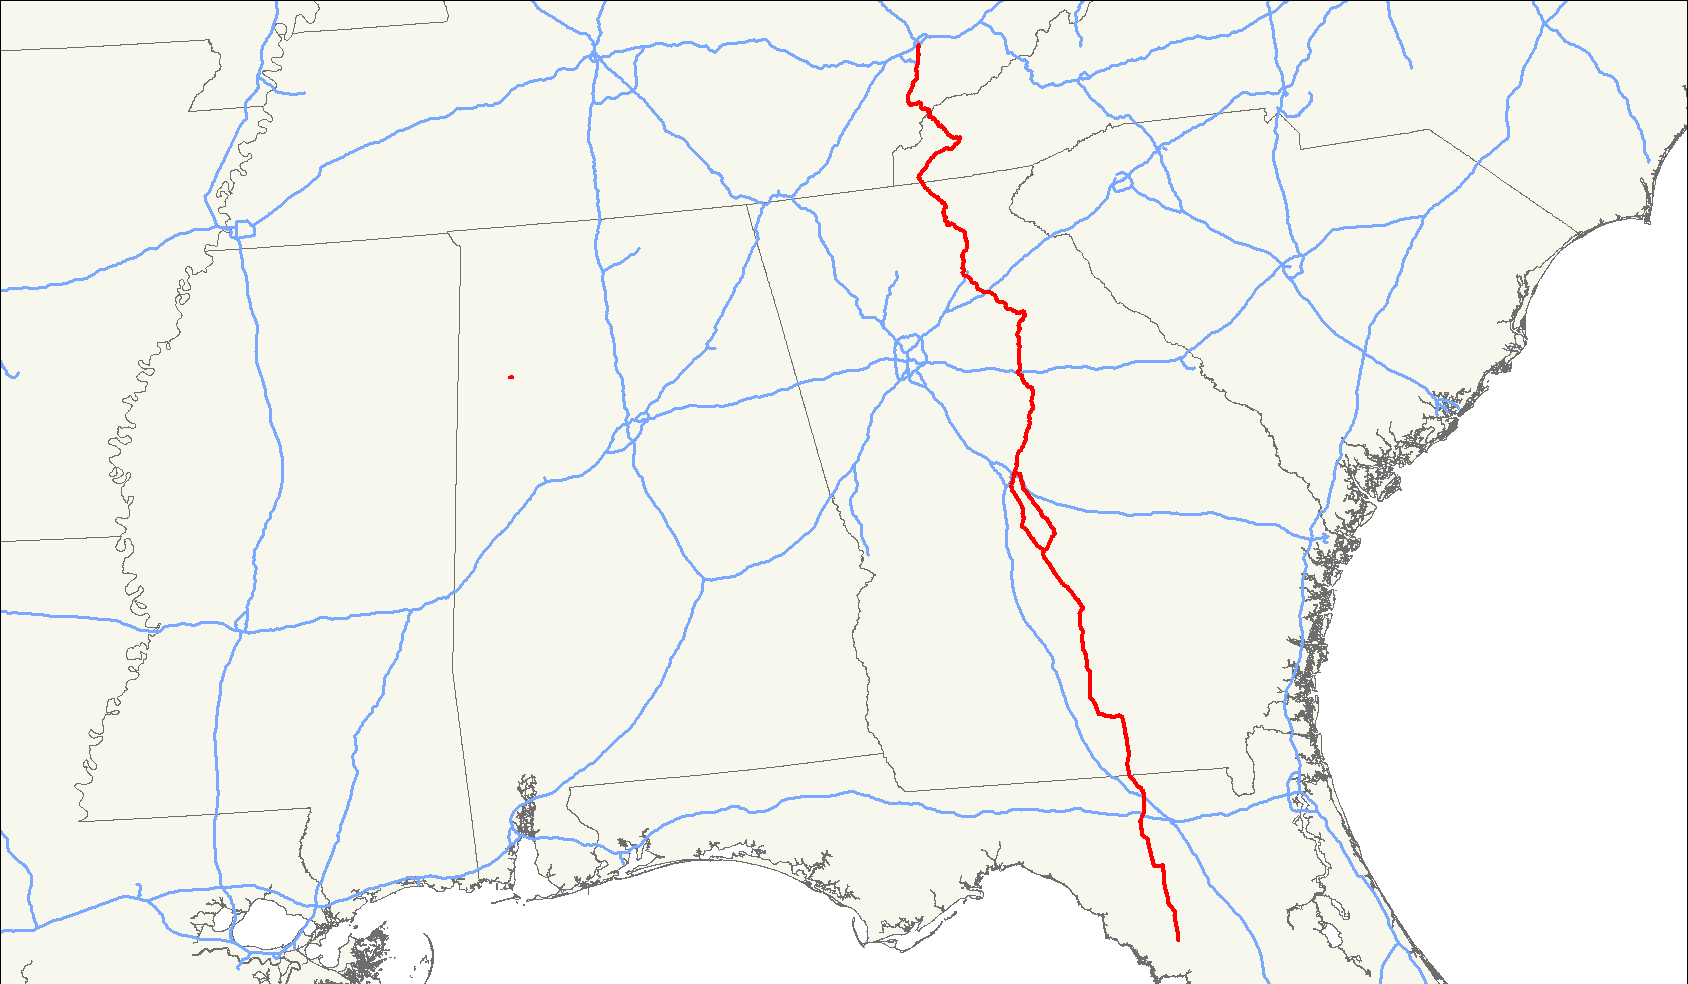 U.S. Route 129 - Wikipedia on dragon's trail map, dragon's back map, lizard tail map, white tail map, hwy 129 the dragon map, dragon tail road map, daytona loop ride map, dragon's blood map, dragon's teeth map, dragon tail motorcycle map, dragon's tale map, dragon tail blue ridge parkway map,